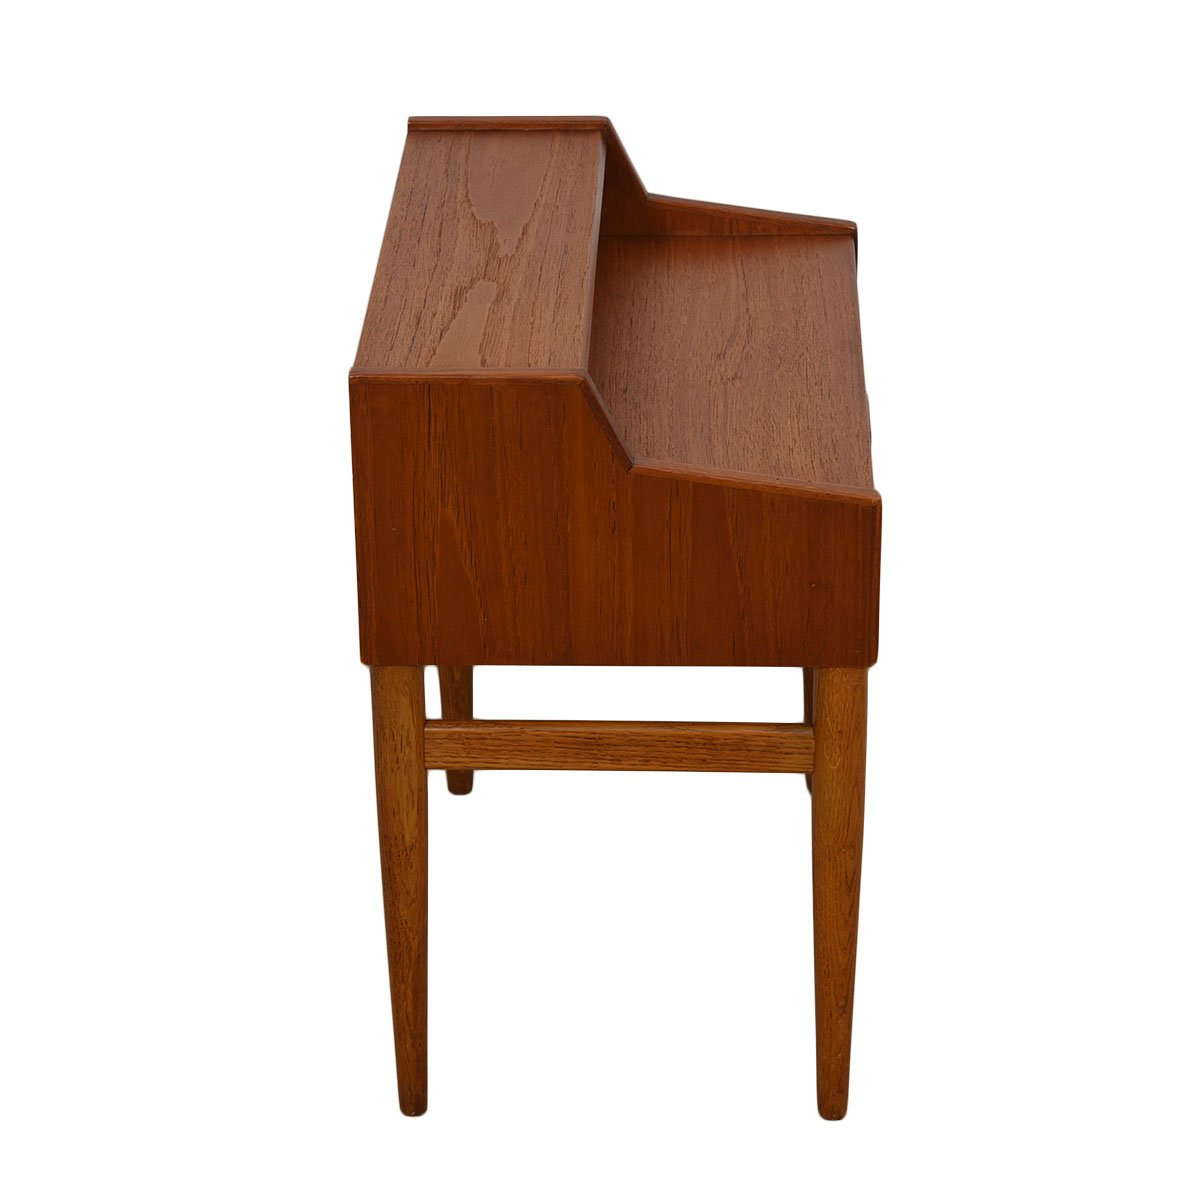 Rare Pair of Arne Hovmand-Olsen for Mogens Kold Teak Nightstands